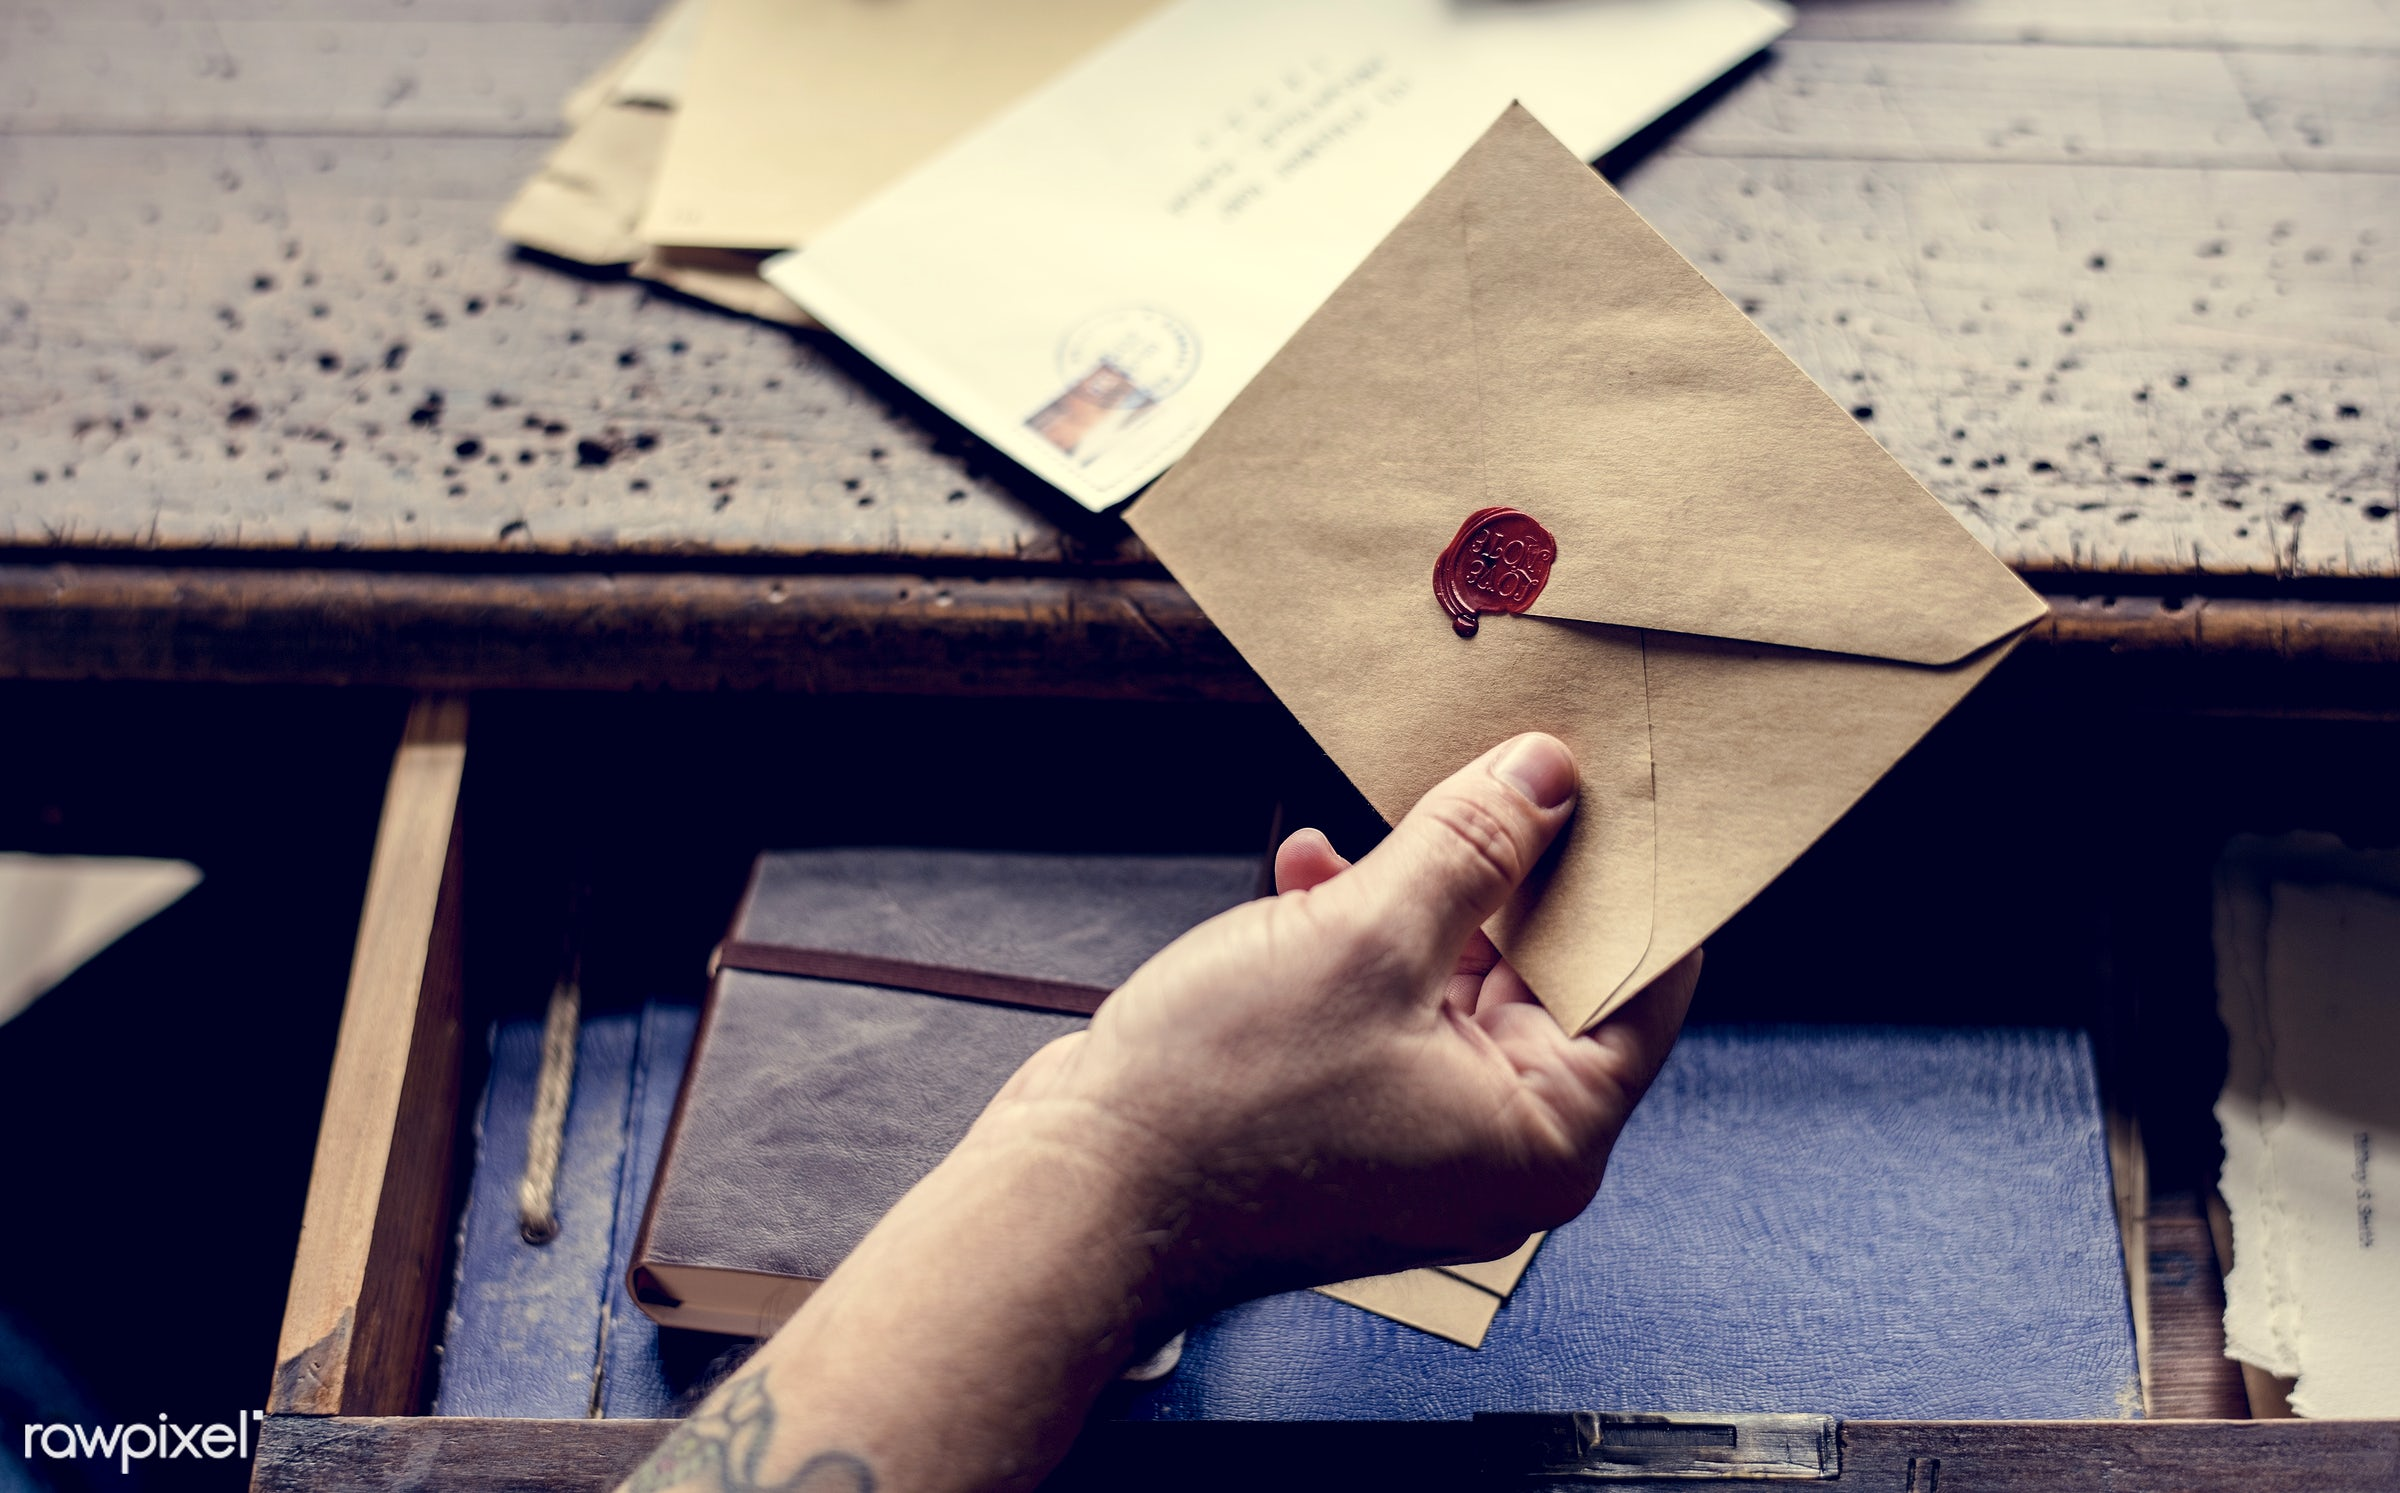 holding, workspace, paper, envelope, wax, retro, workplace, desk, drawer, hand, seal, men, working, aerial view, note, man,...